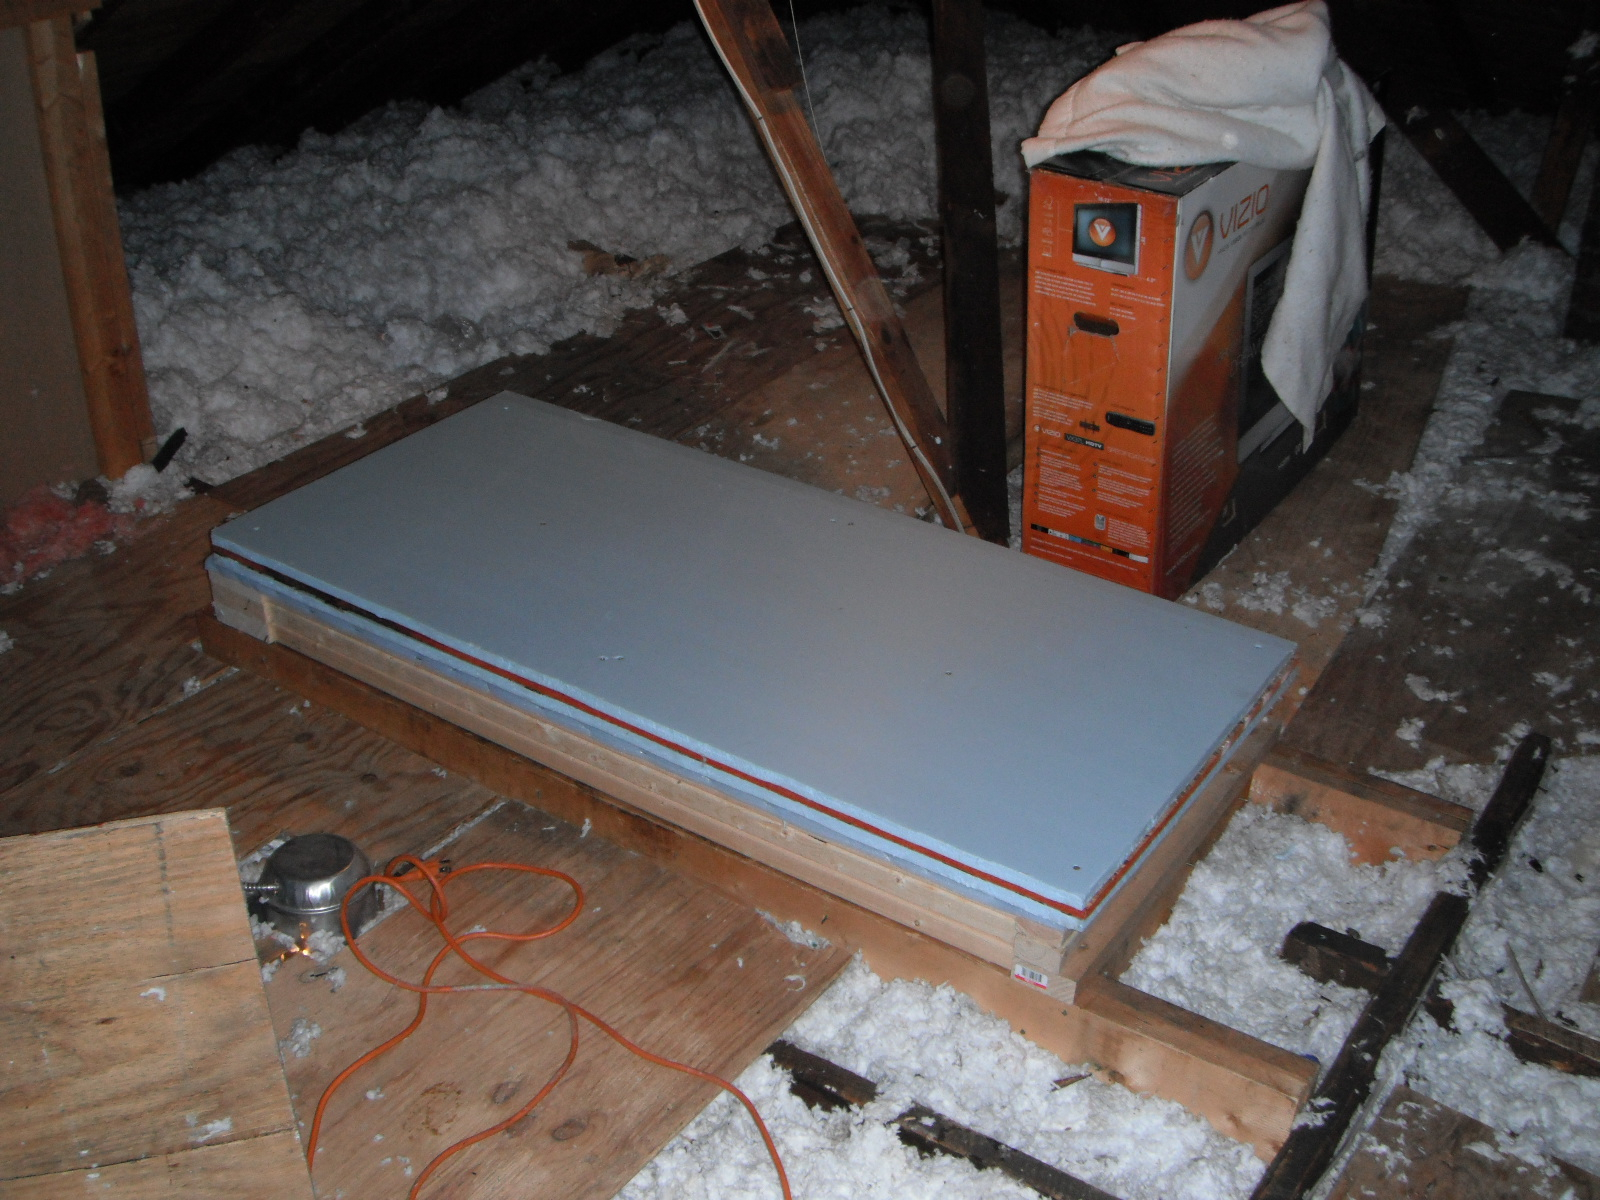 Amazing Attic Cover 2 Attic Stairs Insulation Cover Attic Ladder pertaining to measurements 1600 X 1200